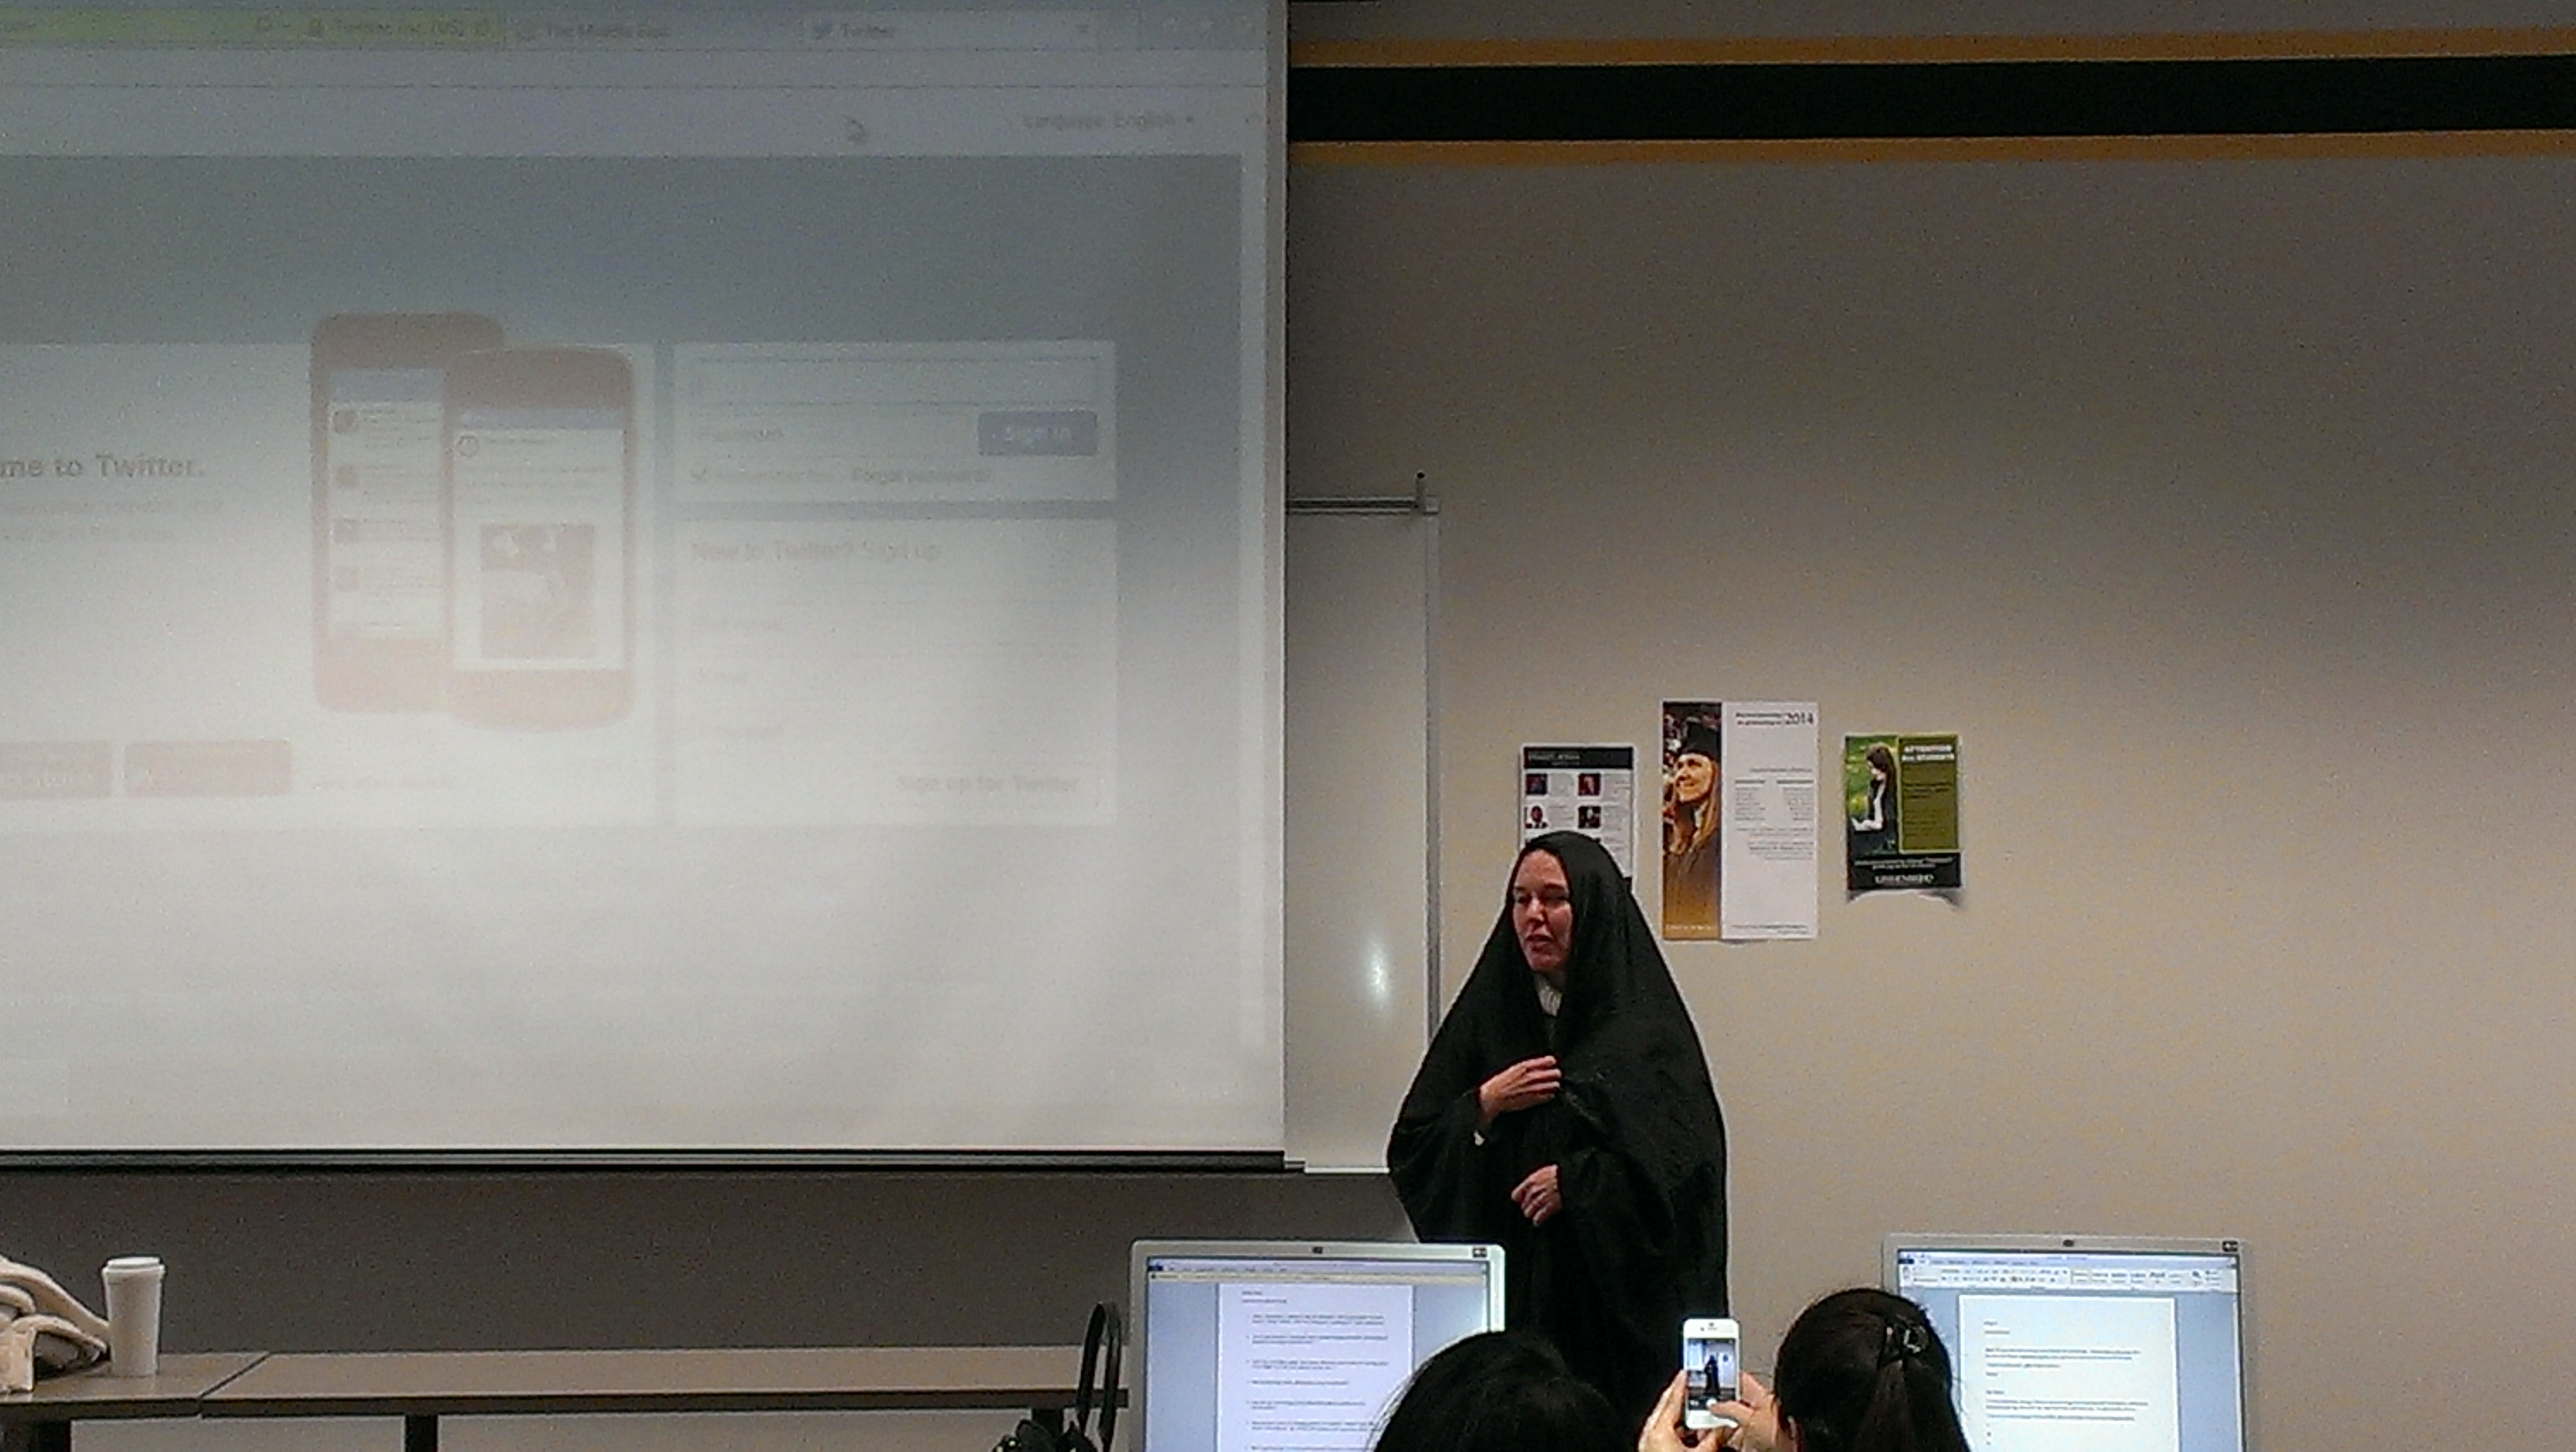 Horan showing our class a traditional Iranian chador, an open cloak worn by many women in Iran.